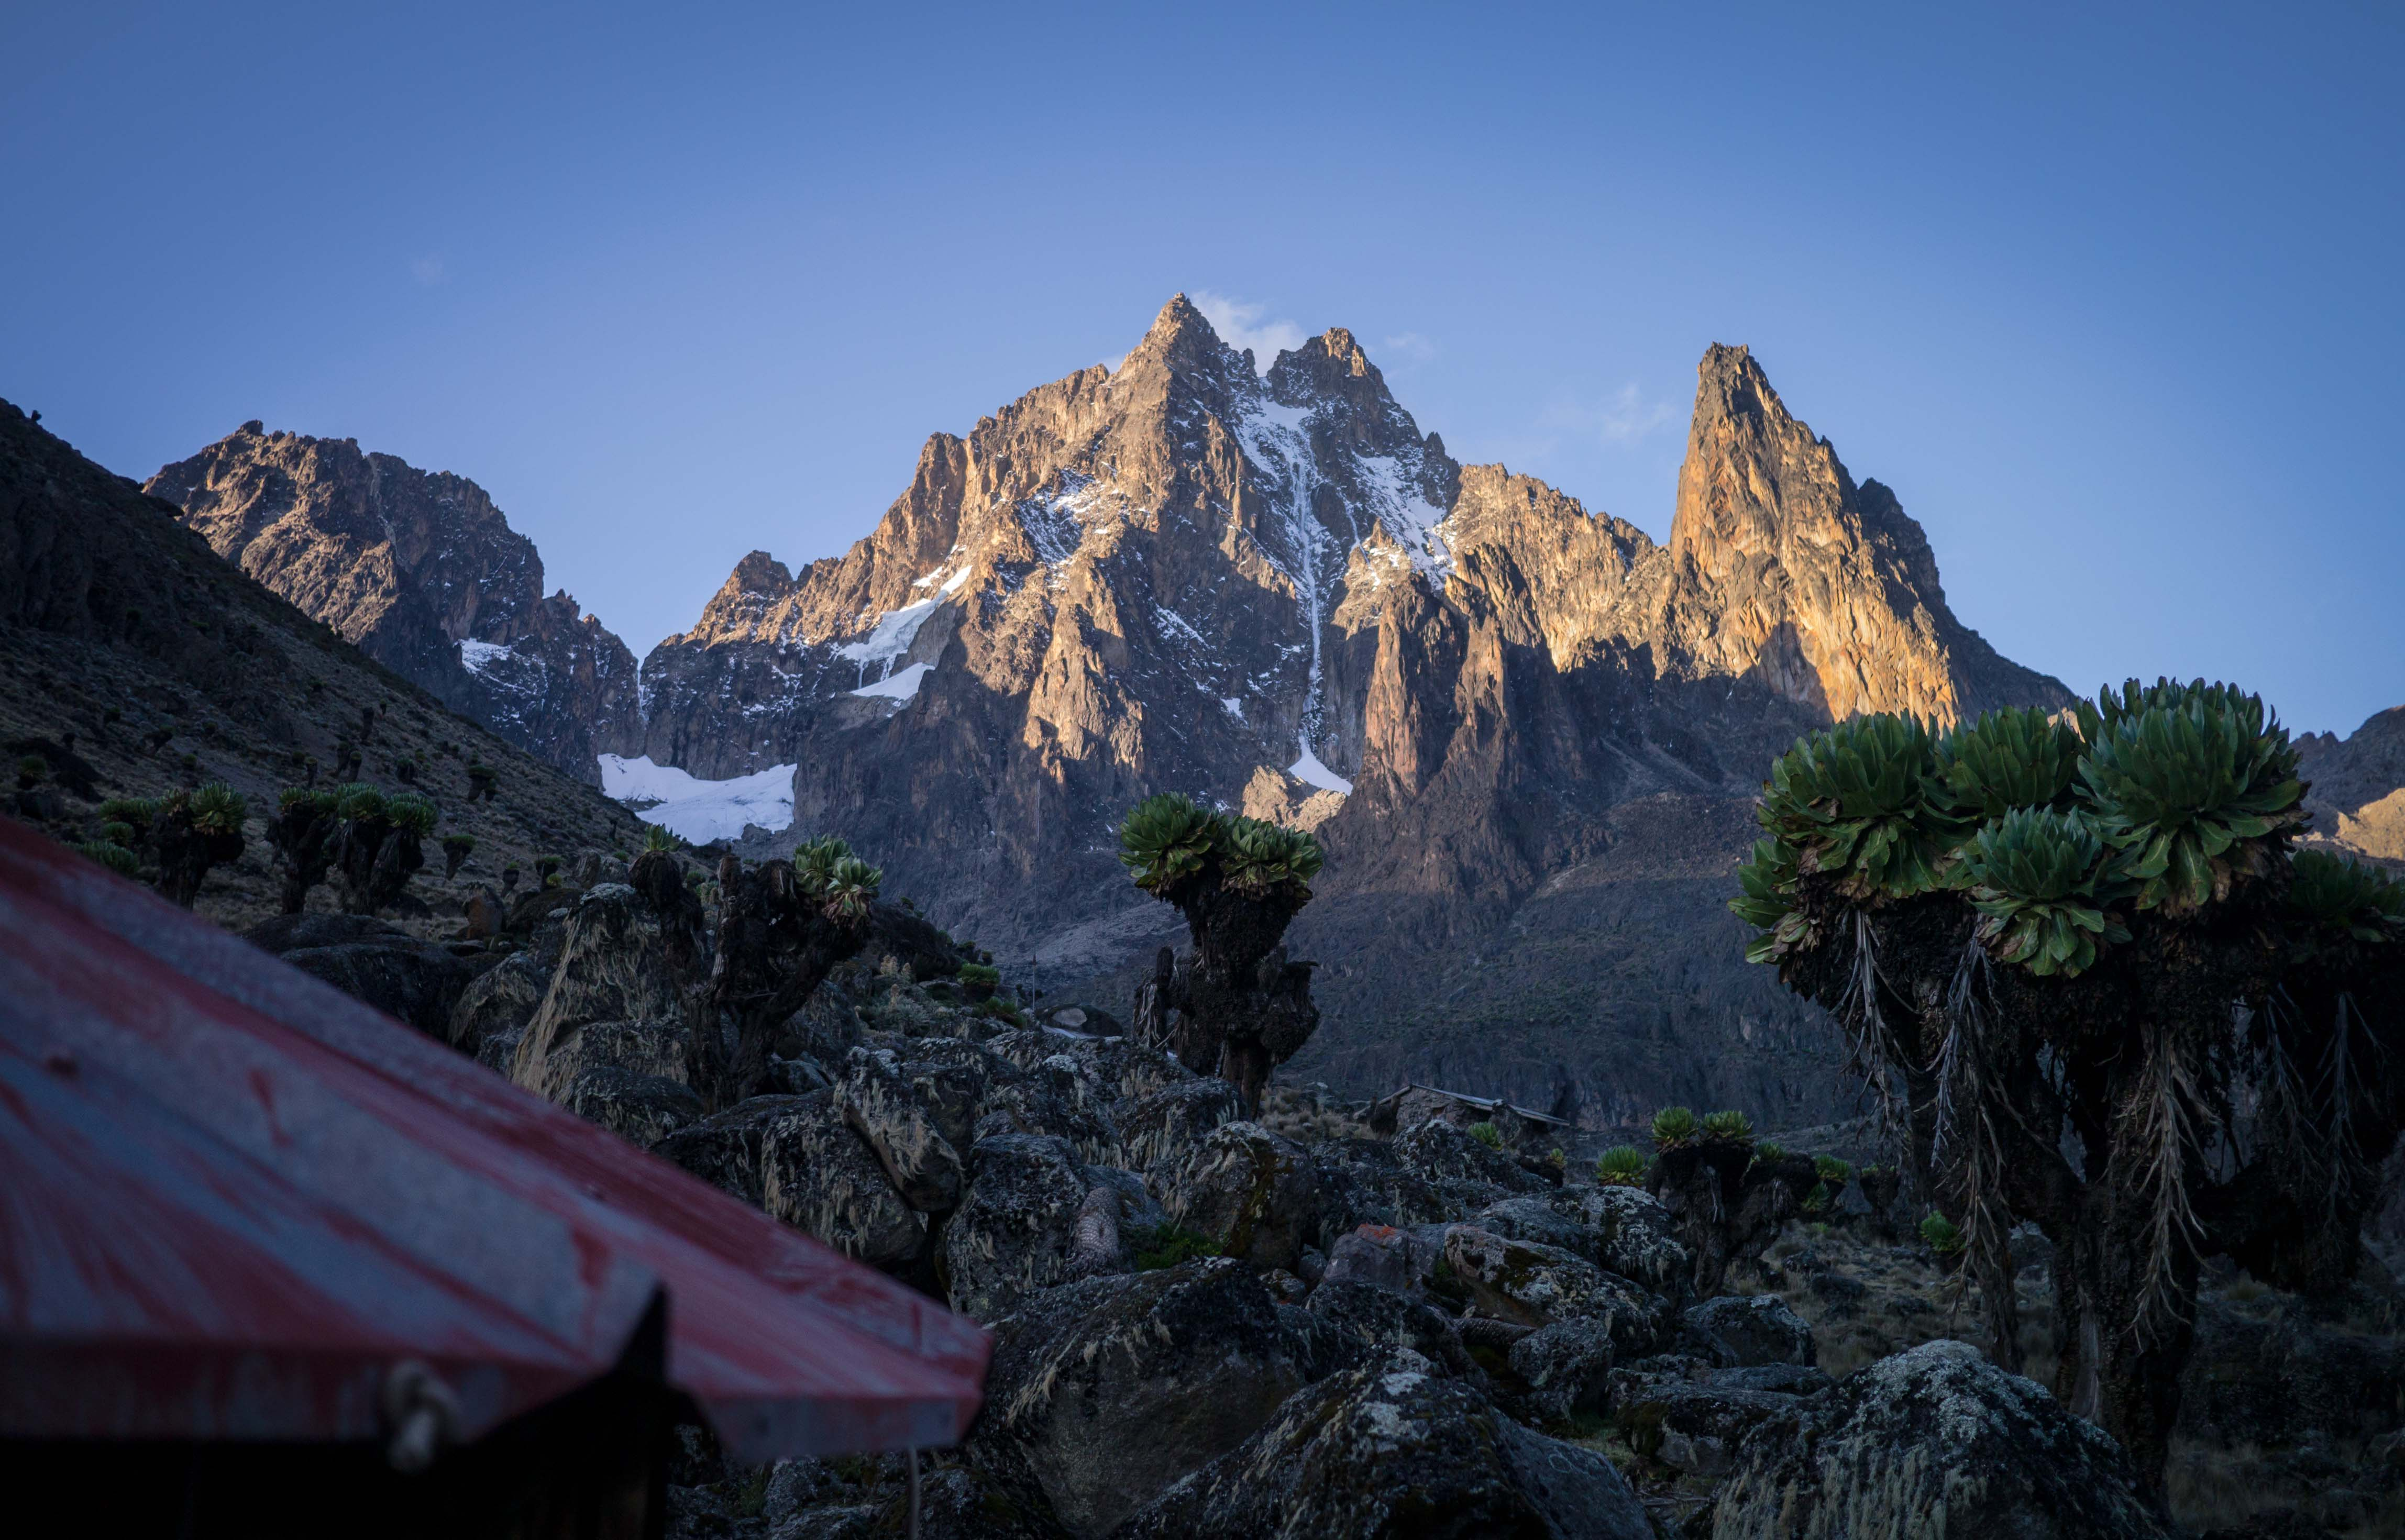 mt kenya Mount kenya (5,199 m - 17,058 ft) is the second highest mountain in africa and the highest mountain in kenya, after which the country is namedit lies just south of the equator and currently has eleven small glaciers.